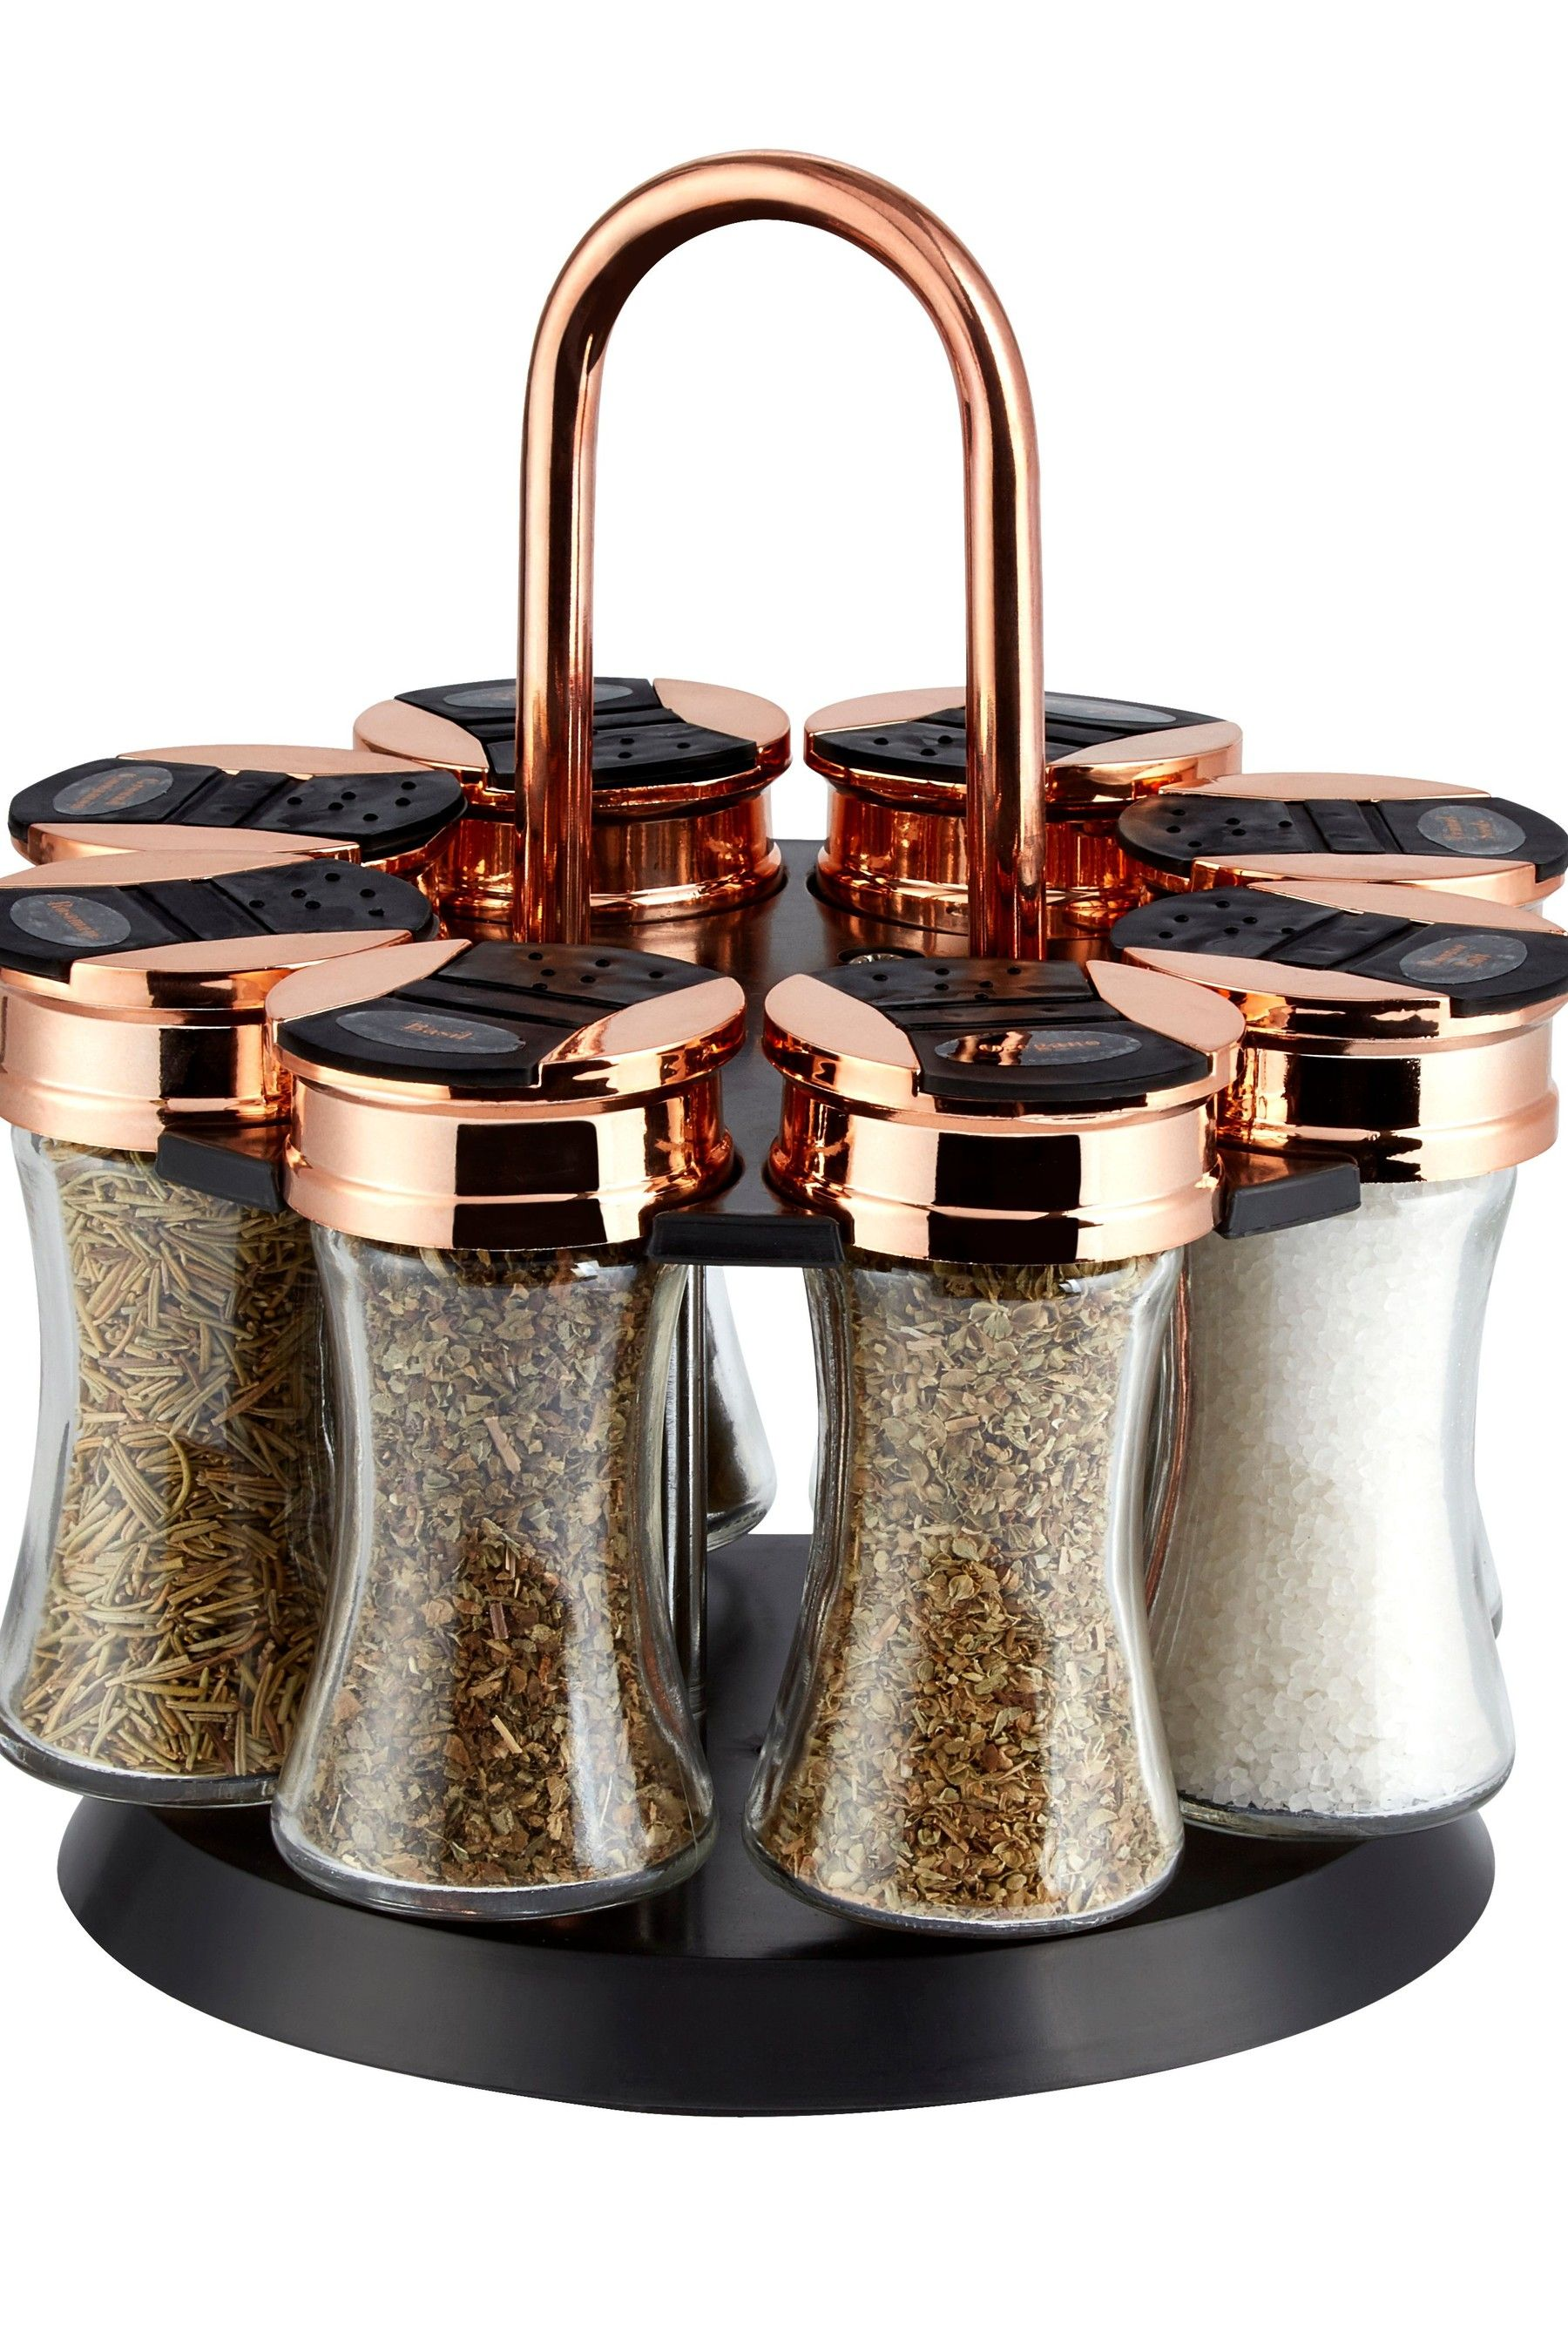 Tower 8 Jar Spice Rack –  Black